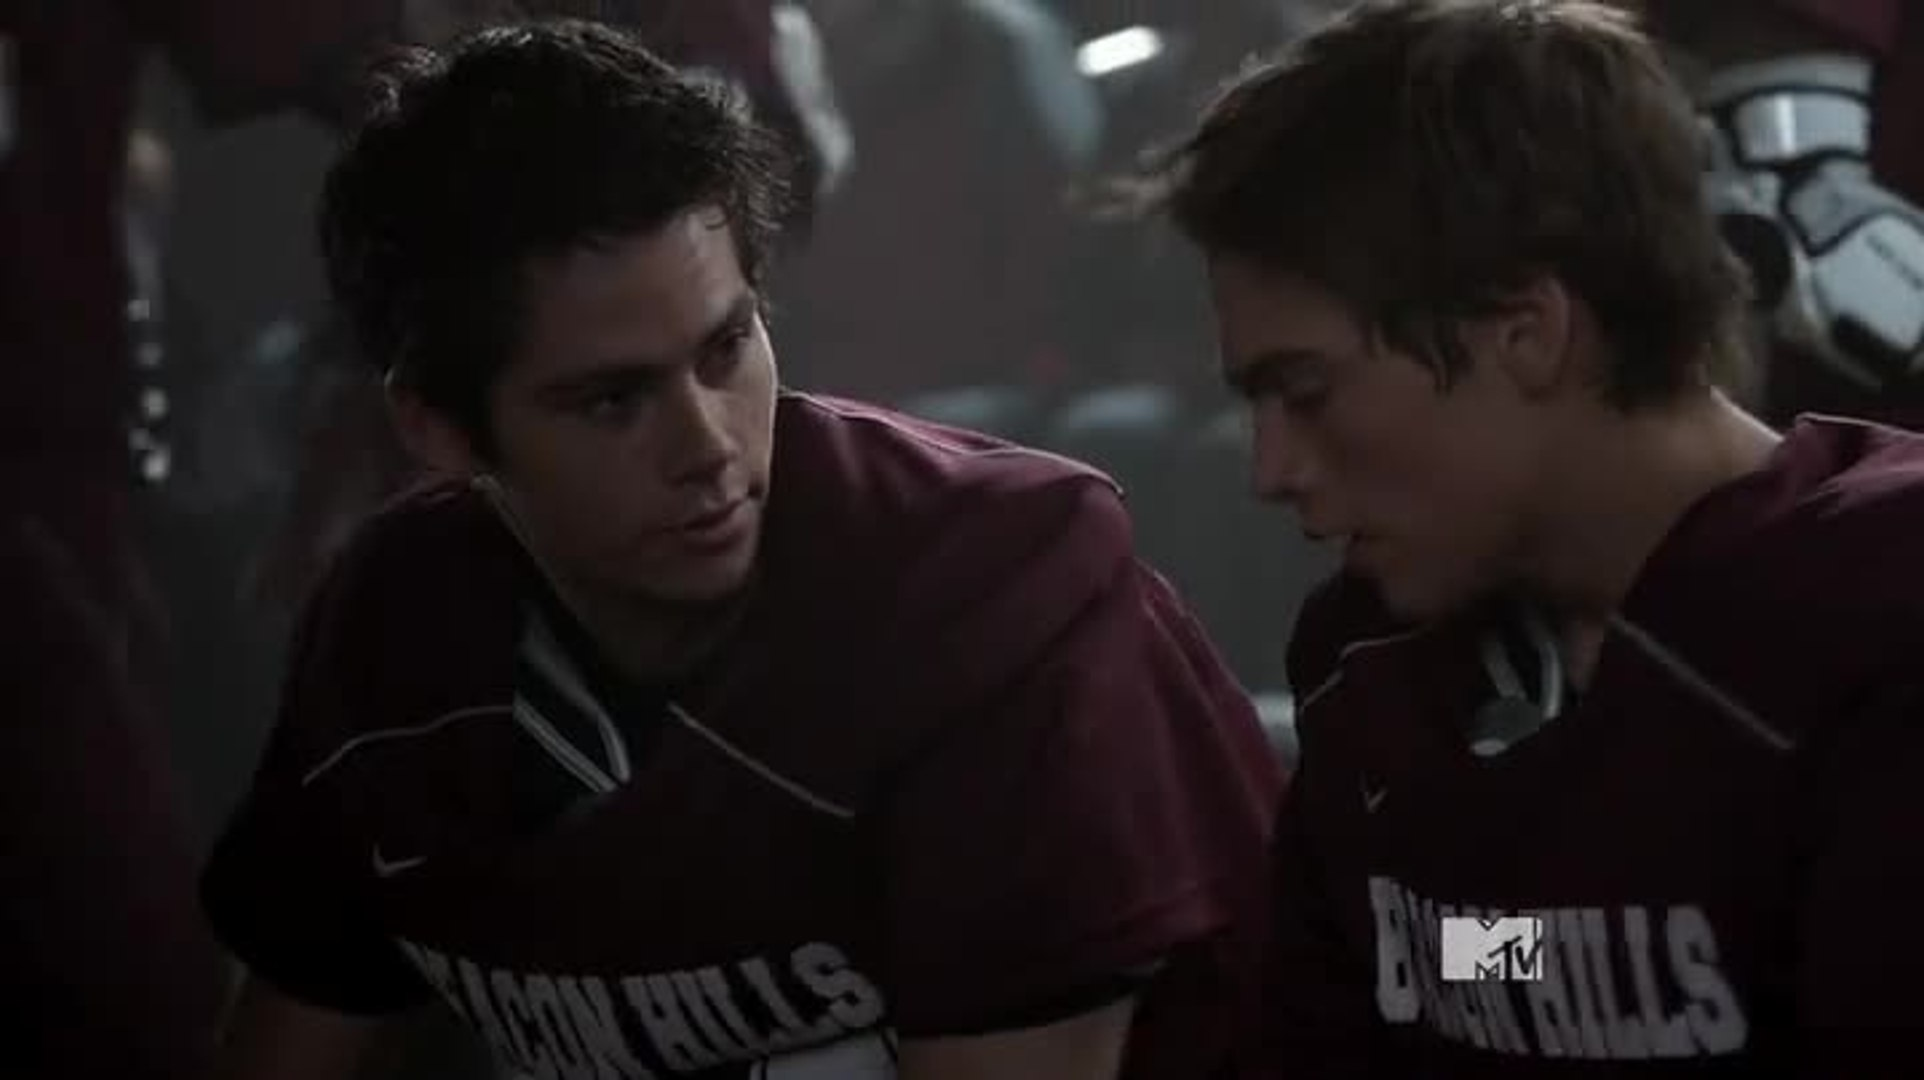 Teen Wolf - S 4 E 11 - A Promise To The Dead